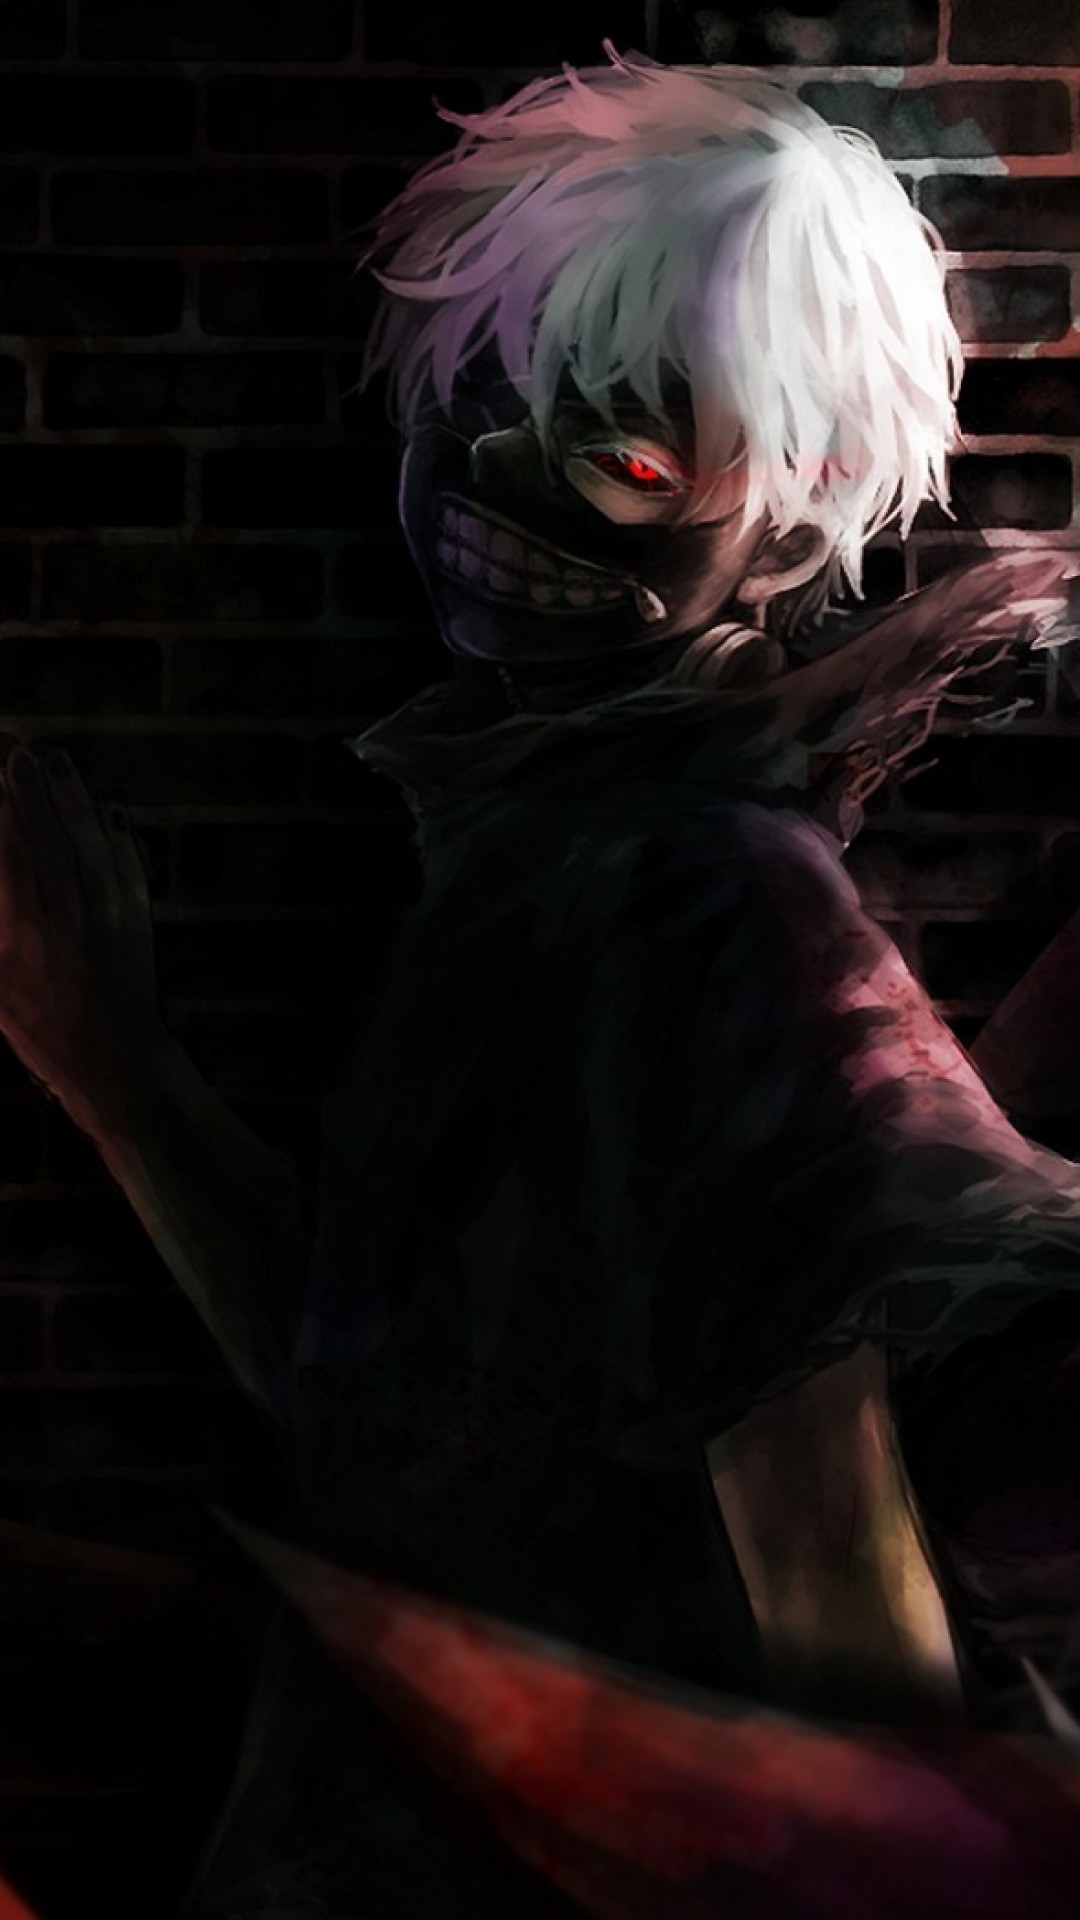 Tokyo Ghoul iPhone Wallpaper (76+ images)